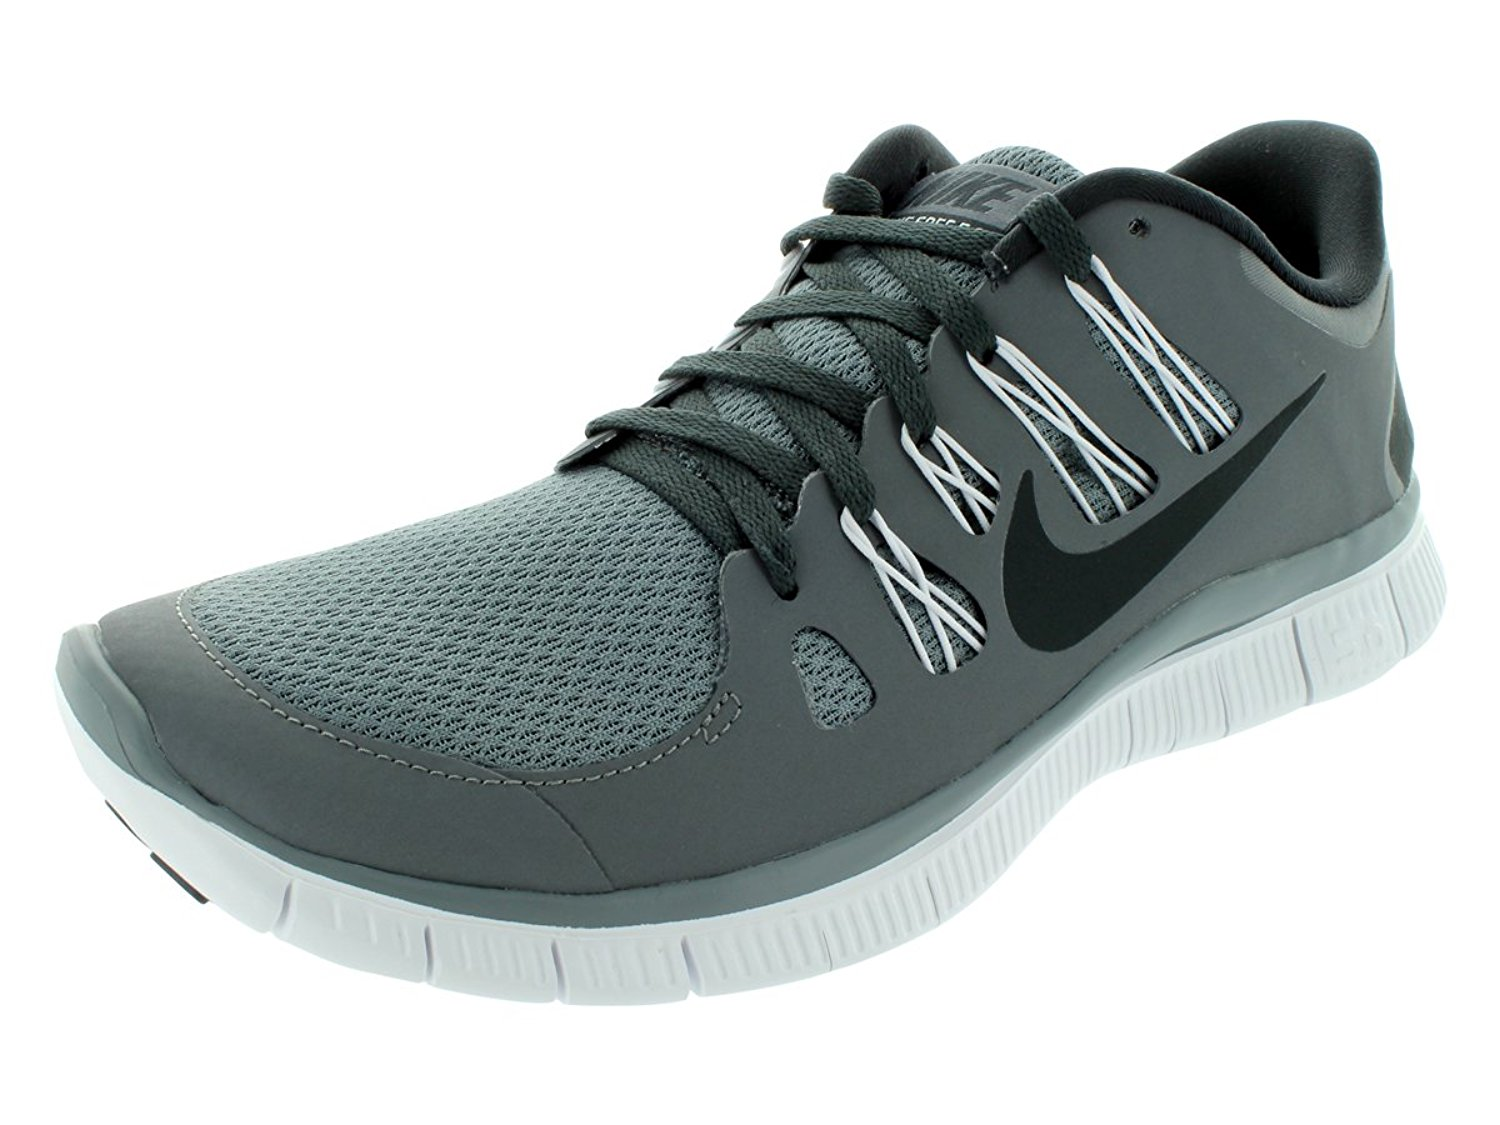 Amazon.com | Nike Men's Free 5.0+ Breathe Running Cool Grey / Anthracite / White Synthetic Shoe - 8 D(M) US | Running